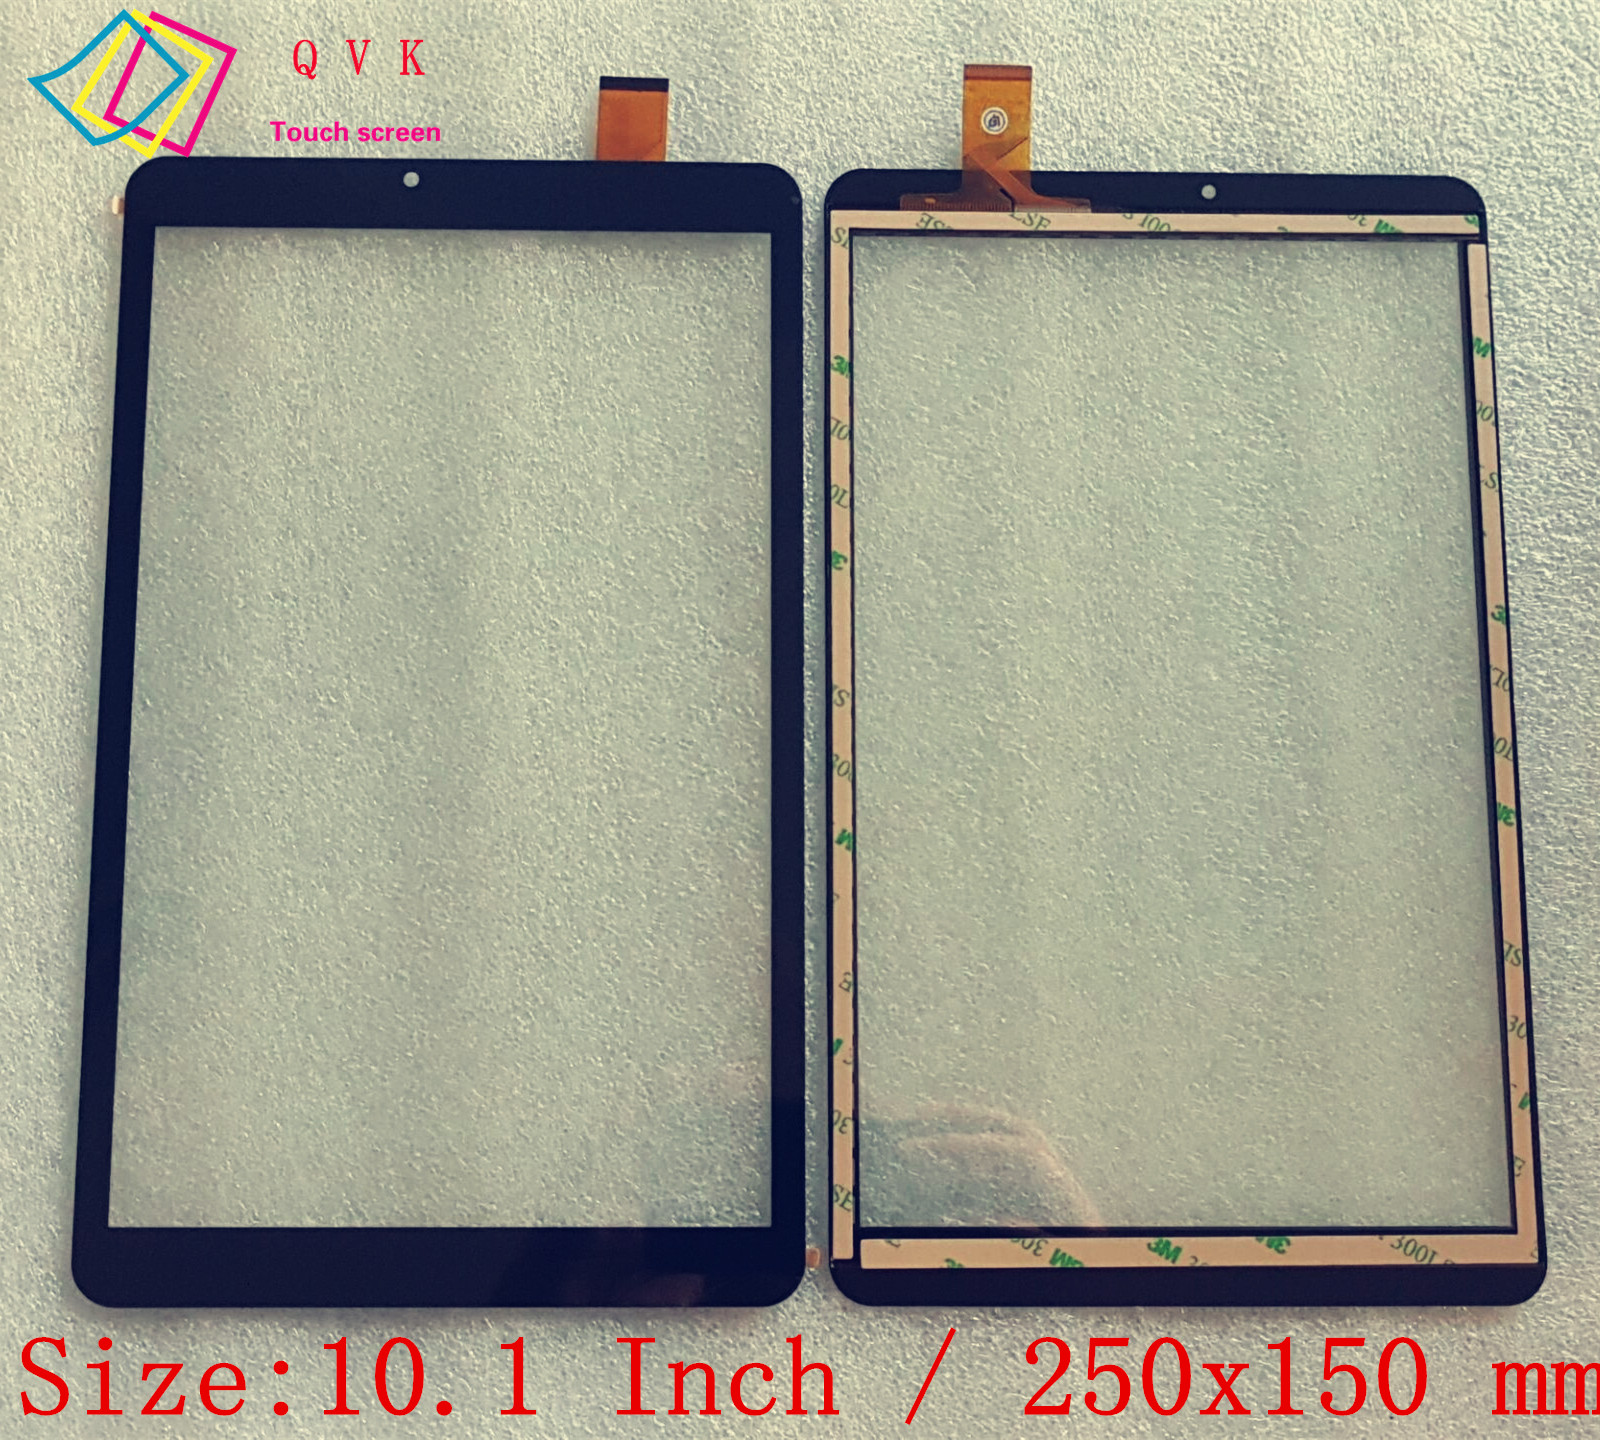 Black 10.1 Inch for DEXP Ursus NS210 tablet pc capacitive touch screen glass digitizer panel Free shipping new for 10 1 dexp ursus kx310 tablet touch screen touch panel digitizer sensor glass replacement free shipping